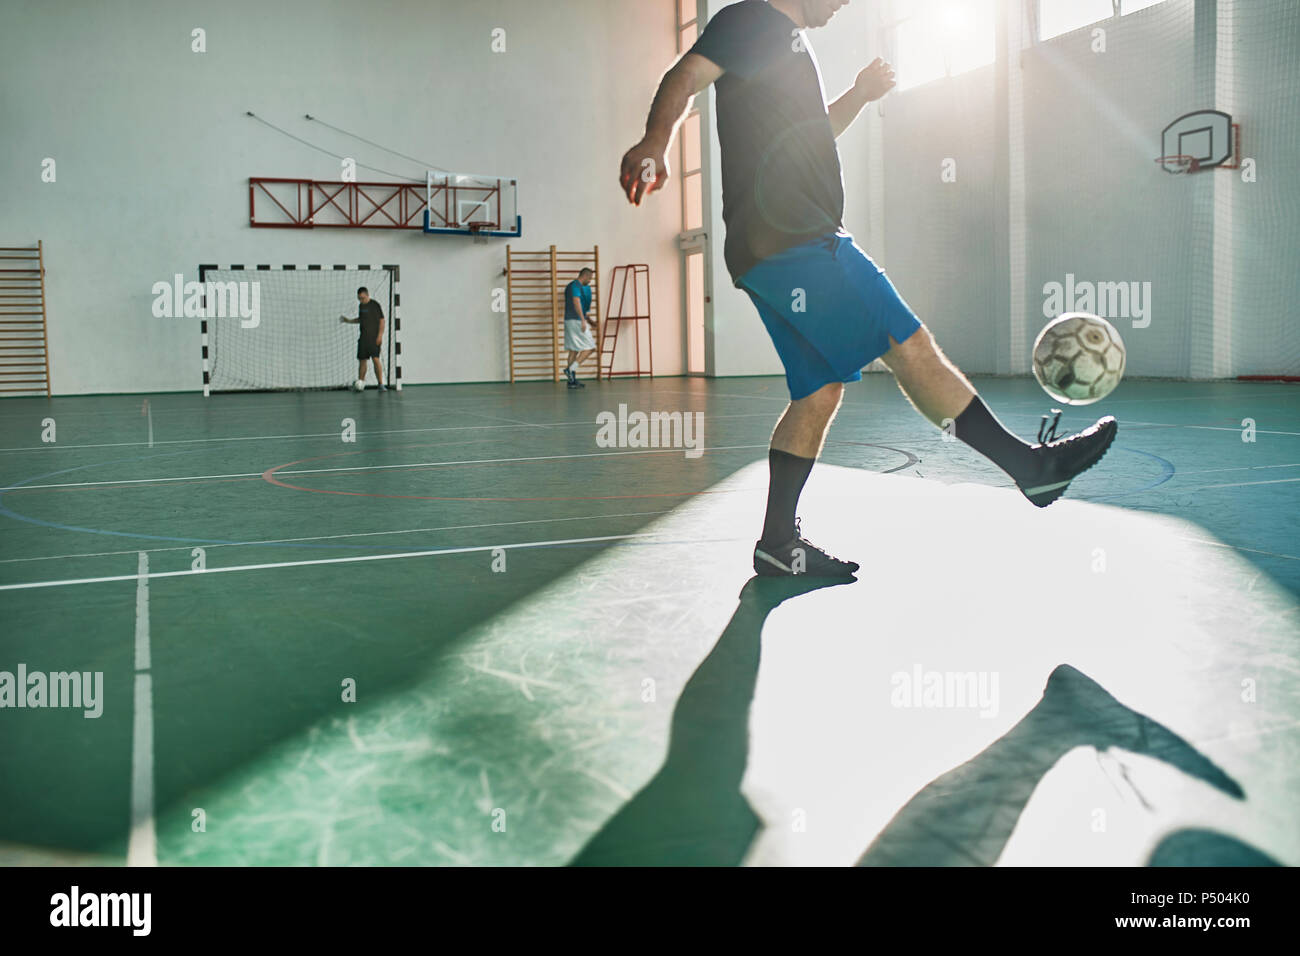 Indoor soccer player balancing the ball - Stock Image